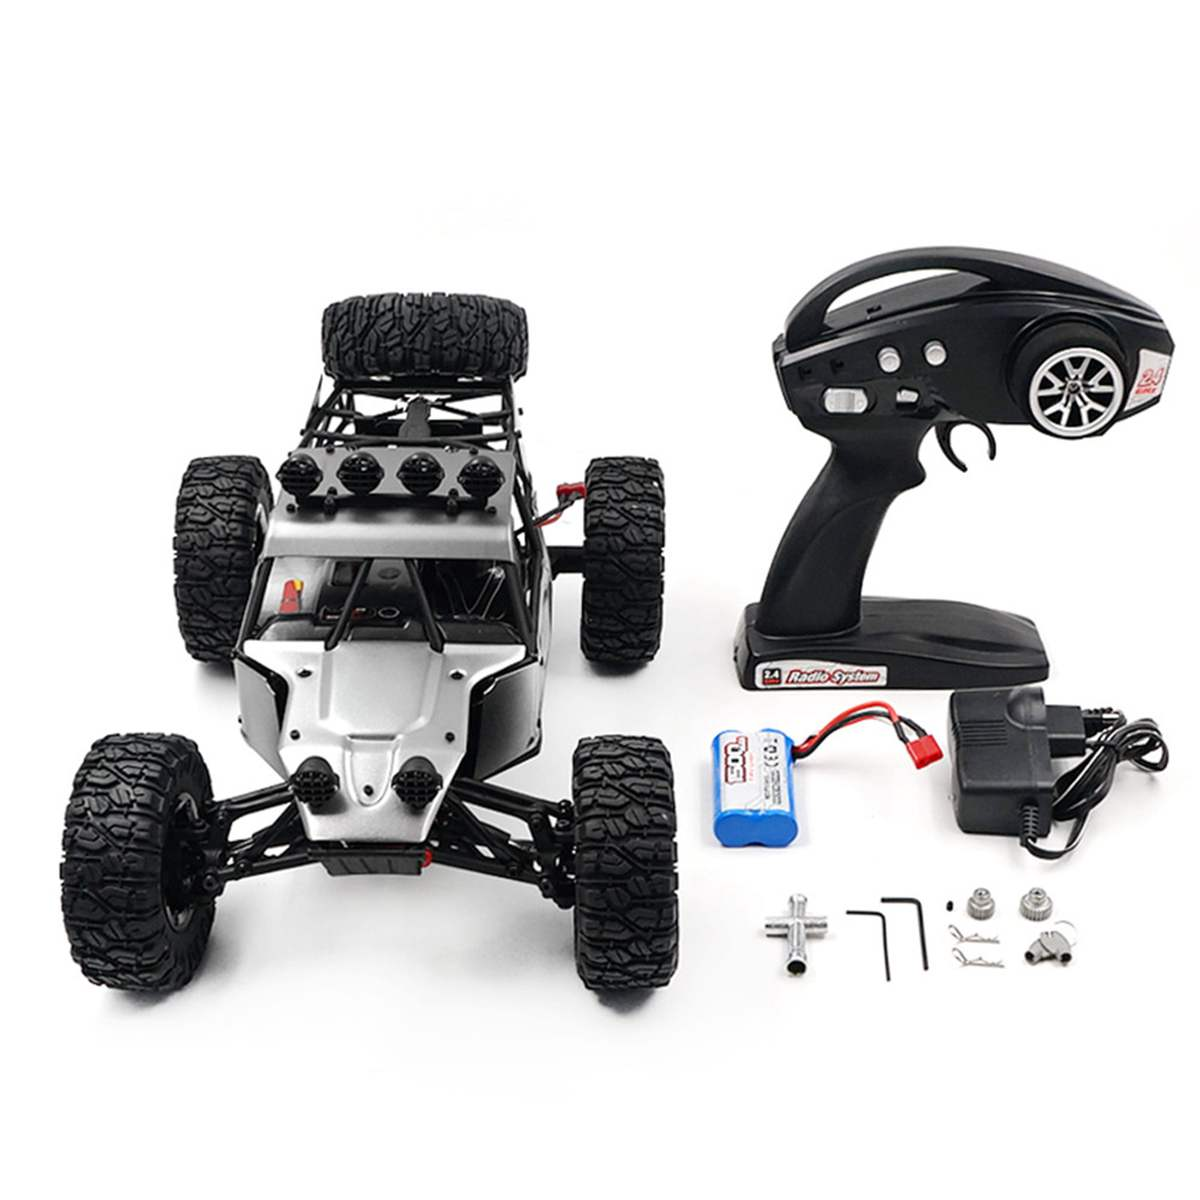 Feiyue FY03H <font><b>RC</b></font> Car 1:12 2.4Ghz 4WD Radio Control Car <font><b>Brushless</b></font> <font><b>Motor</b></font> Metal Body Shell Crawler Off-road Car RTR Toys Gifts image